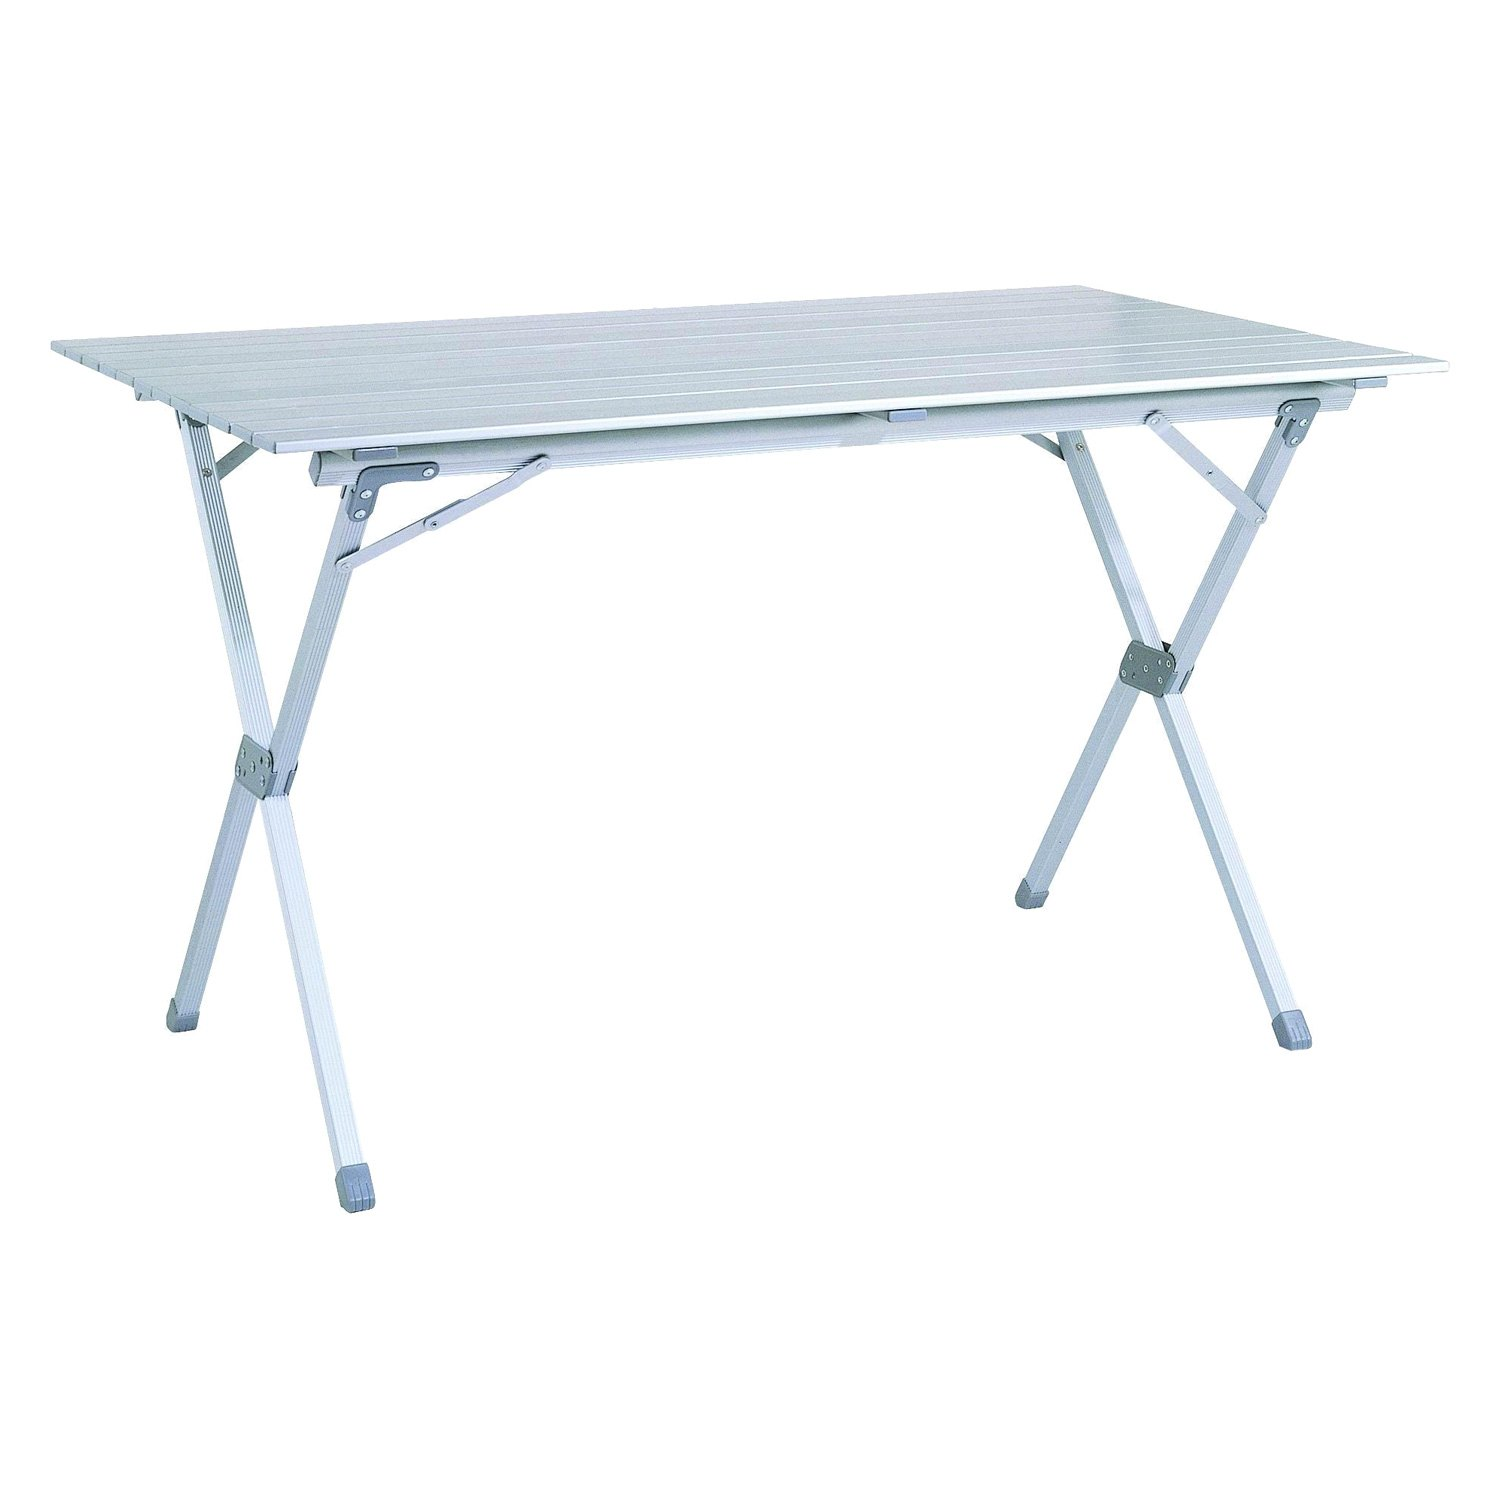 Mings mark ta8114 stylish camping aluminum roll top table for Markup table